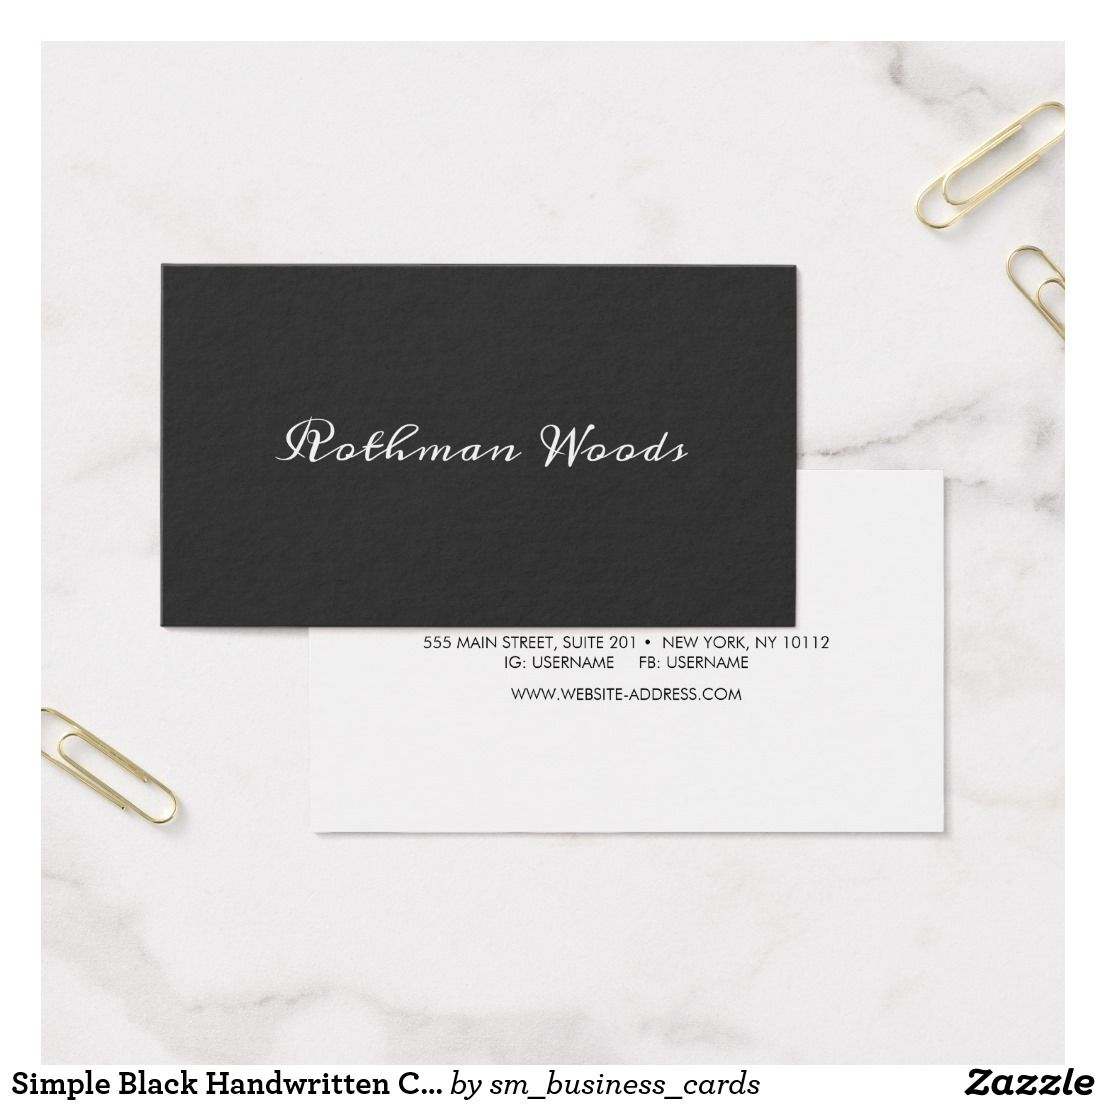 Simple Black Handwritten Calligraphy Business Card | Business ...